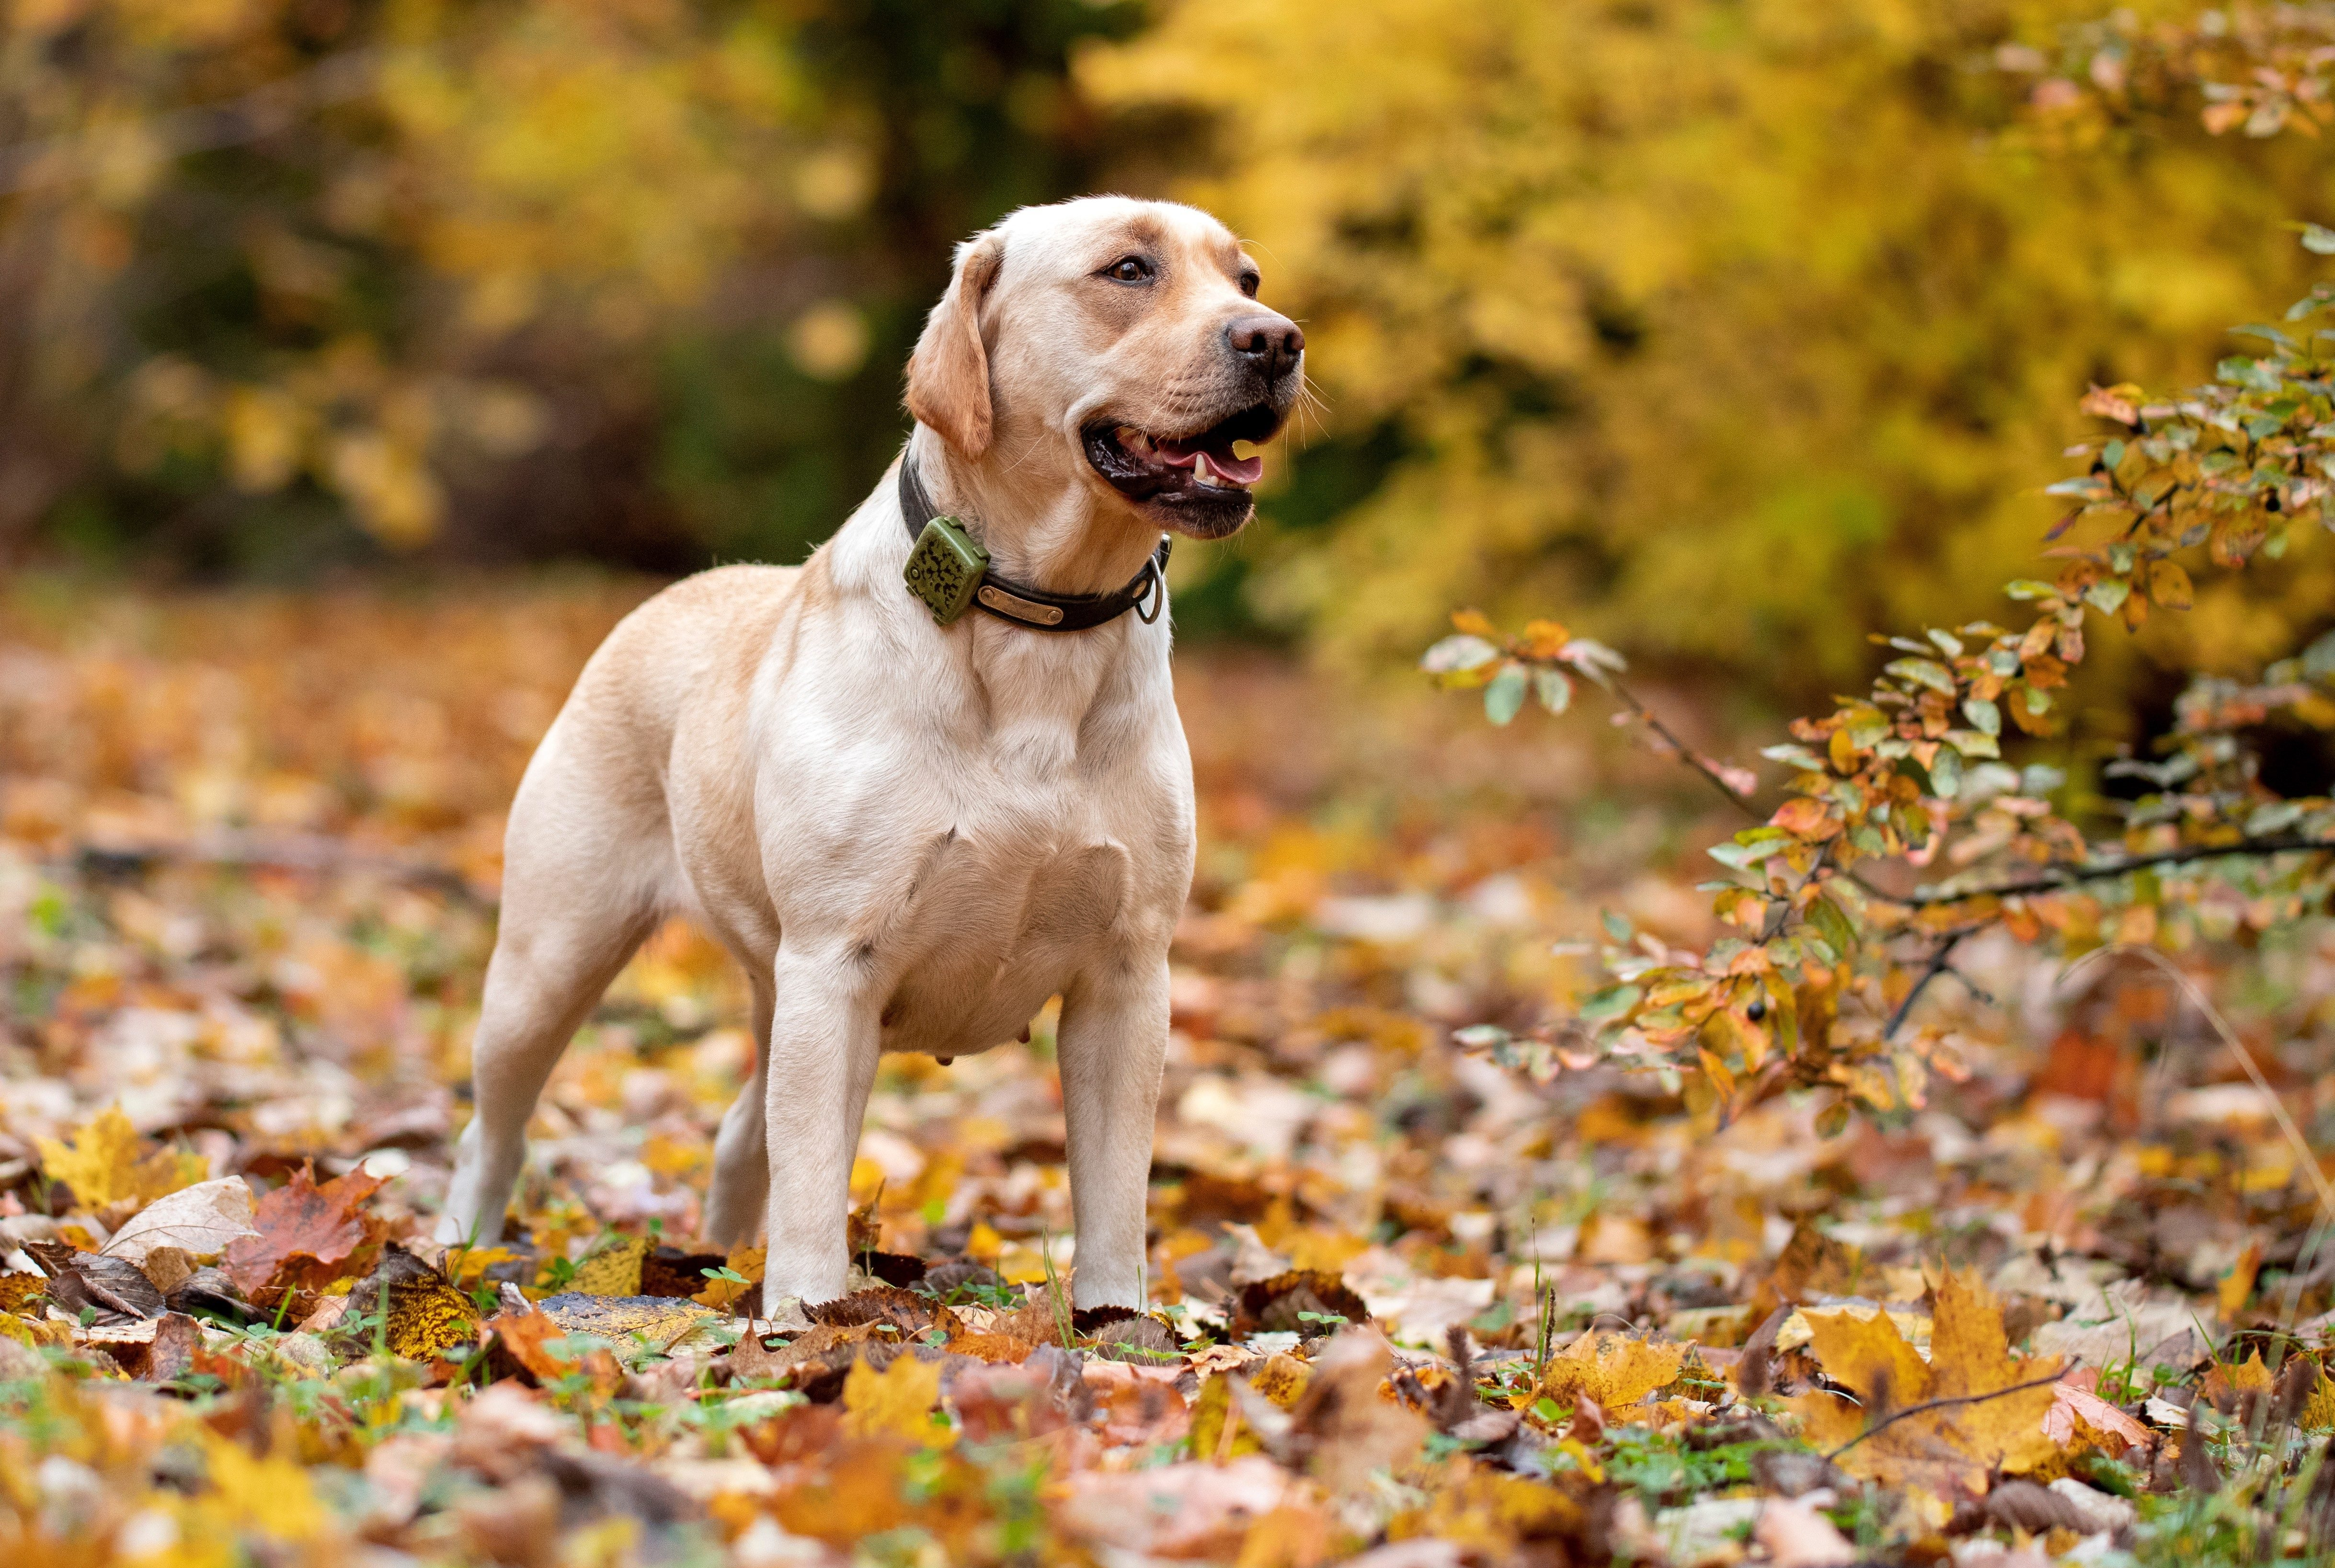 Labrador Retriever in the autumn forest with a tracker on his neck.